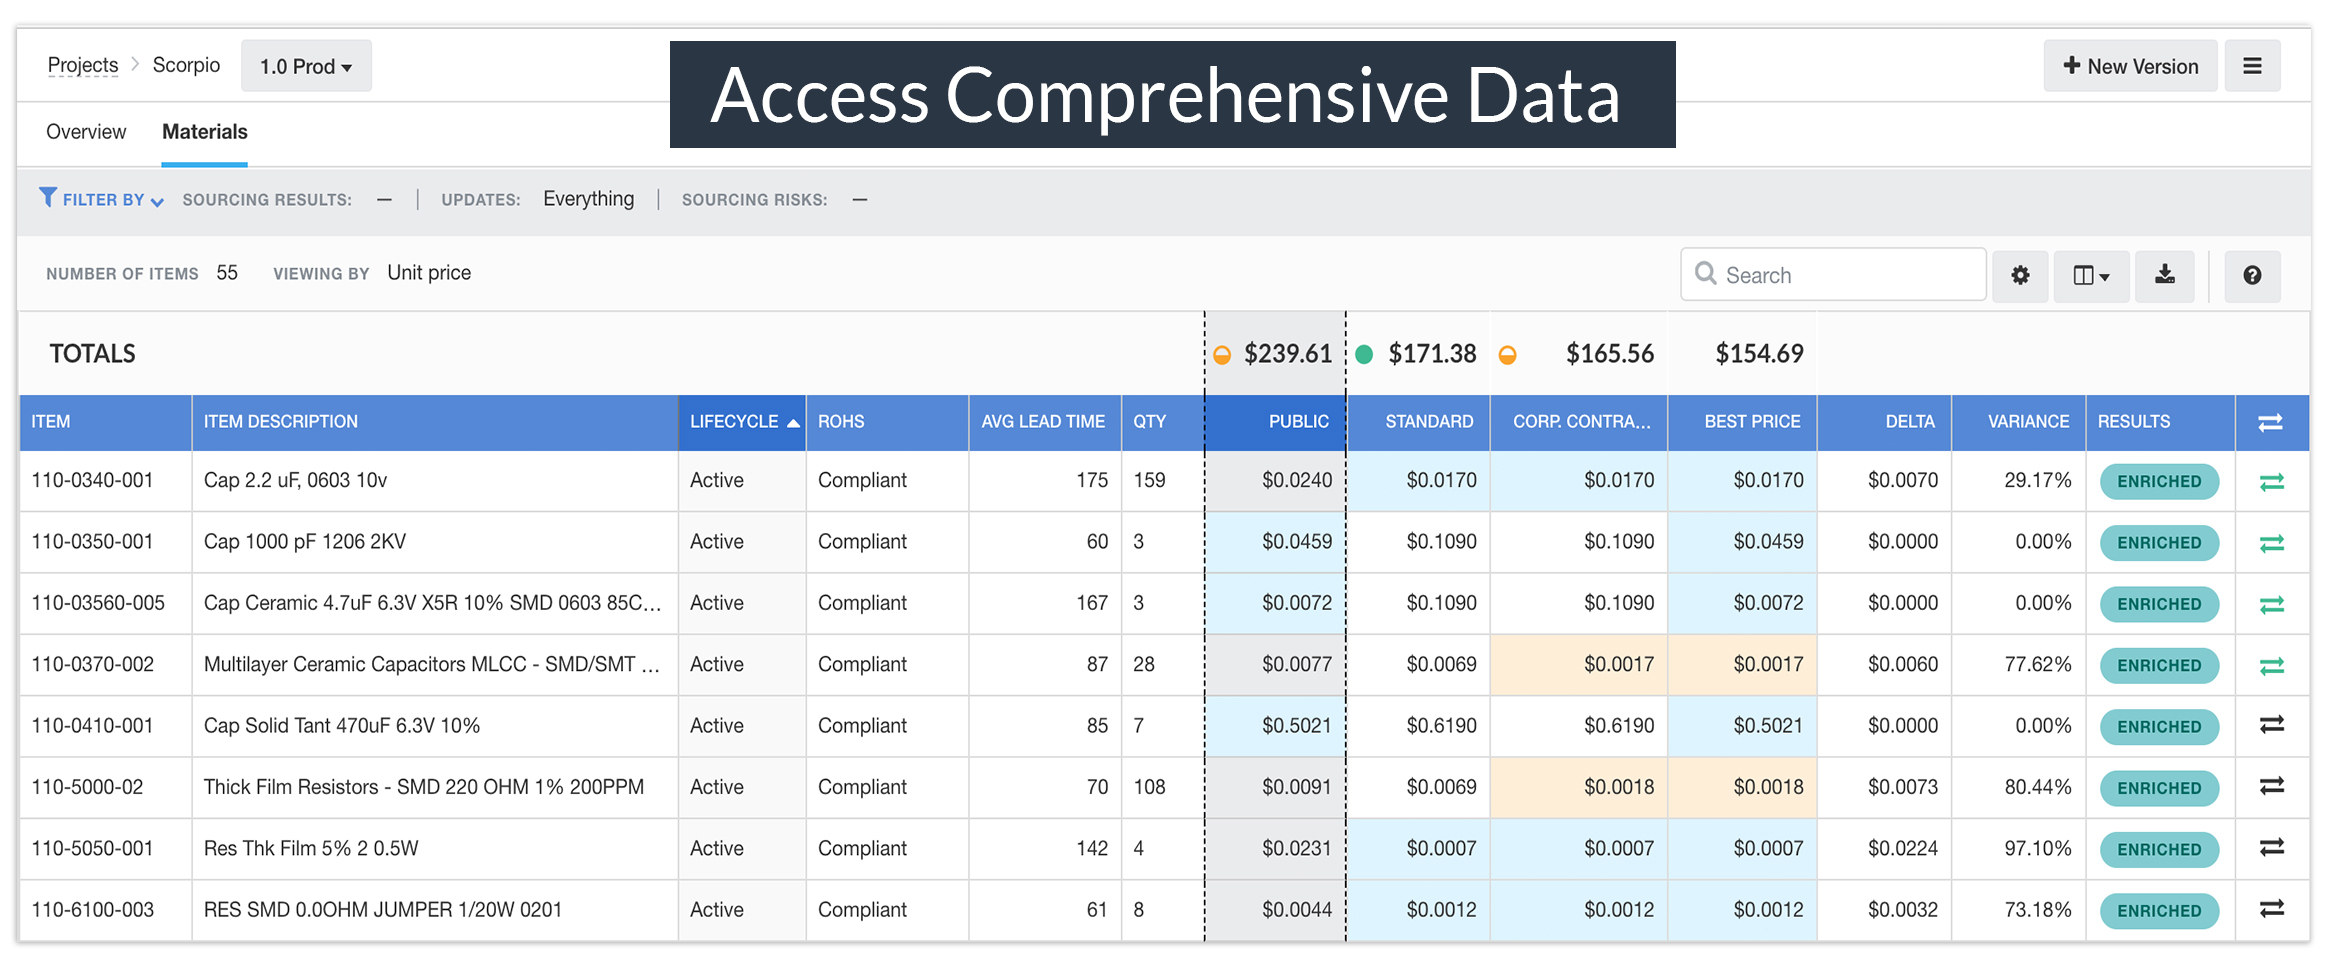 Access Comprehensive Data